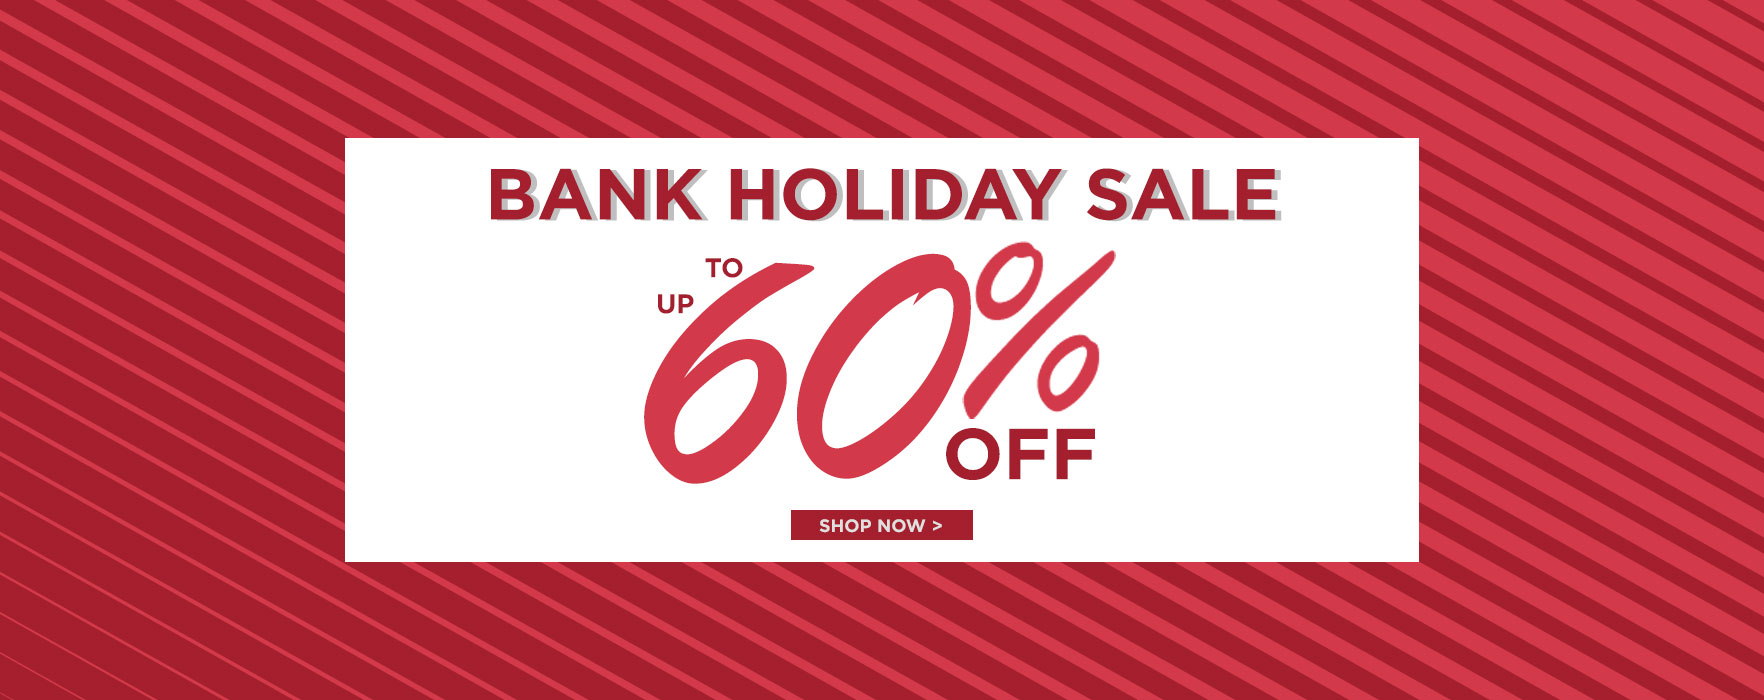 Bank Holiday Sale Up To 60%